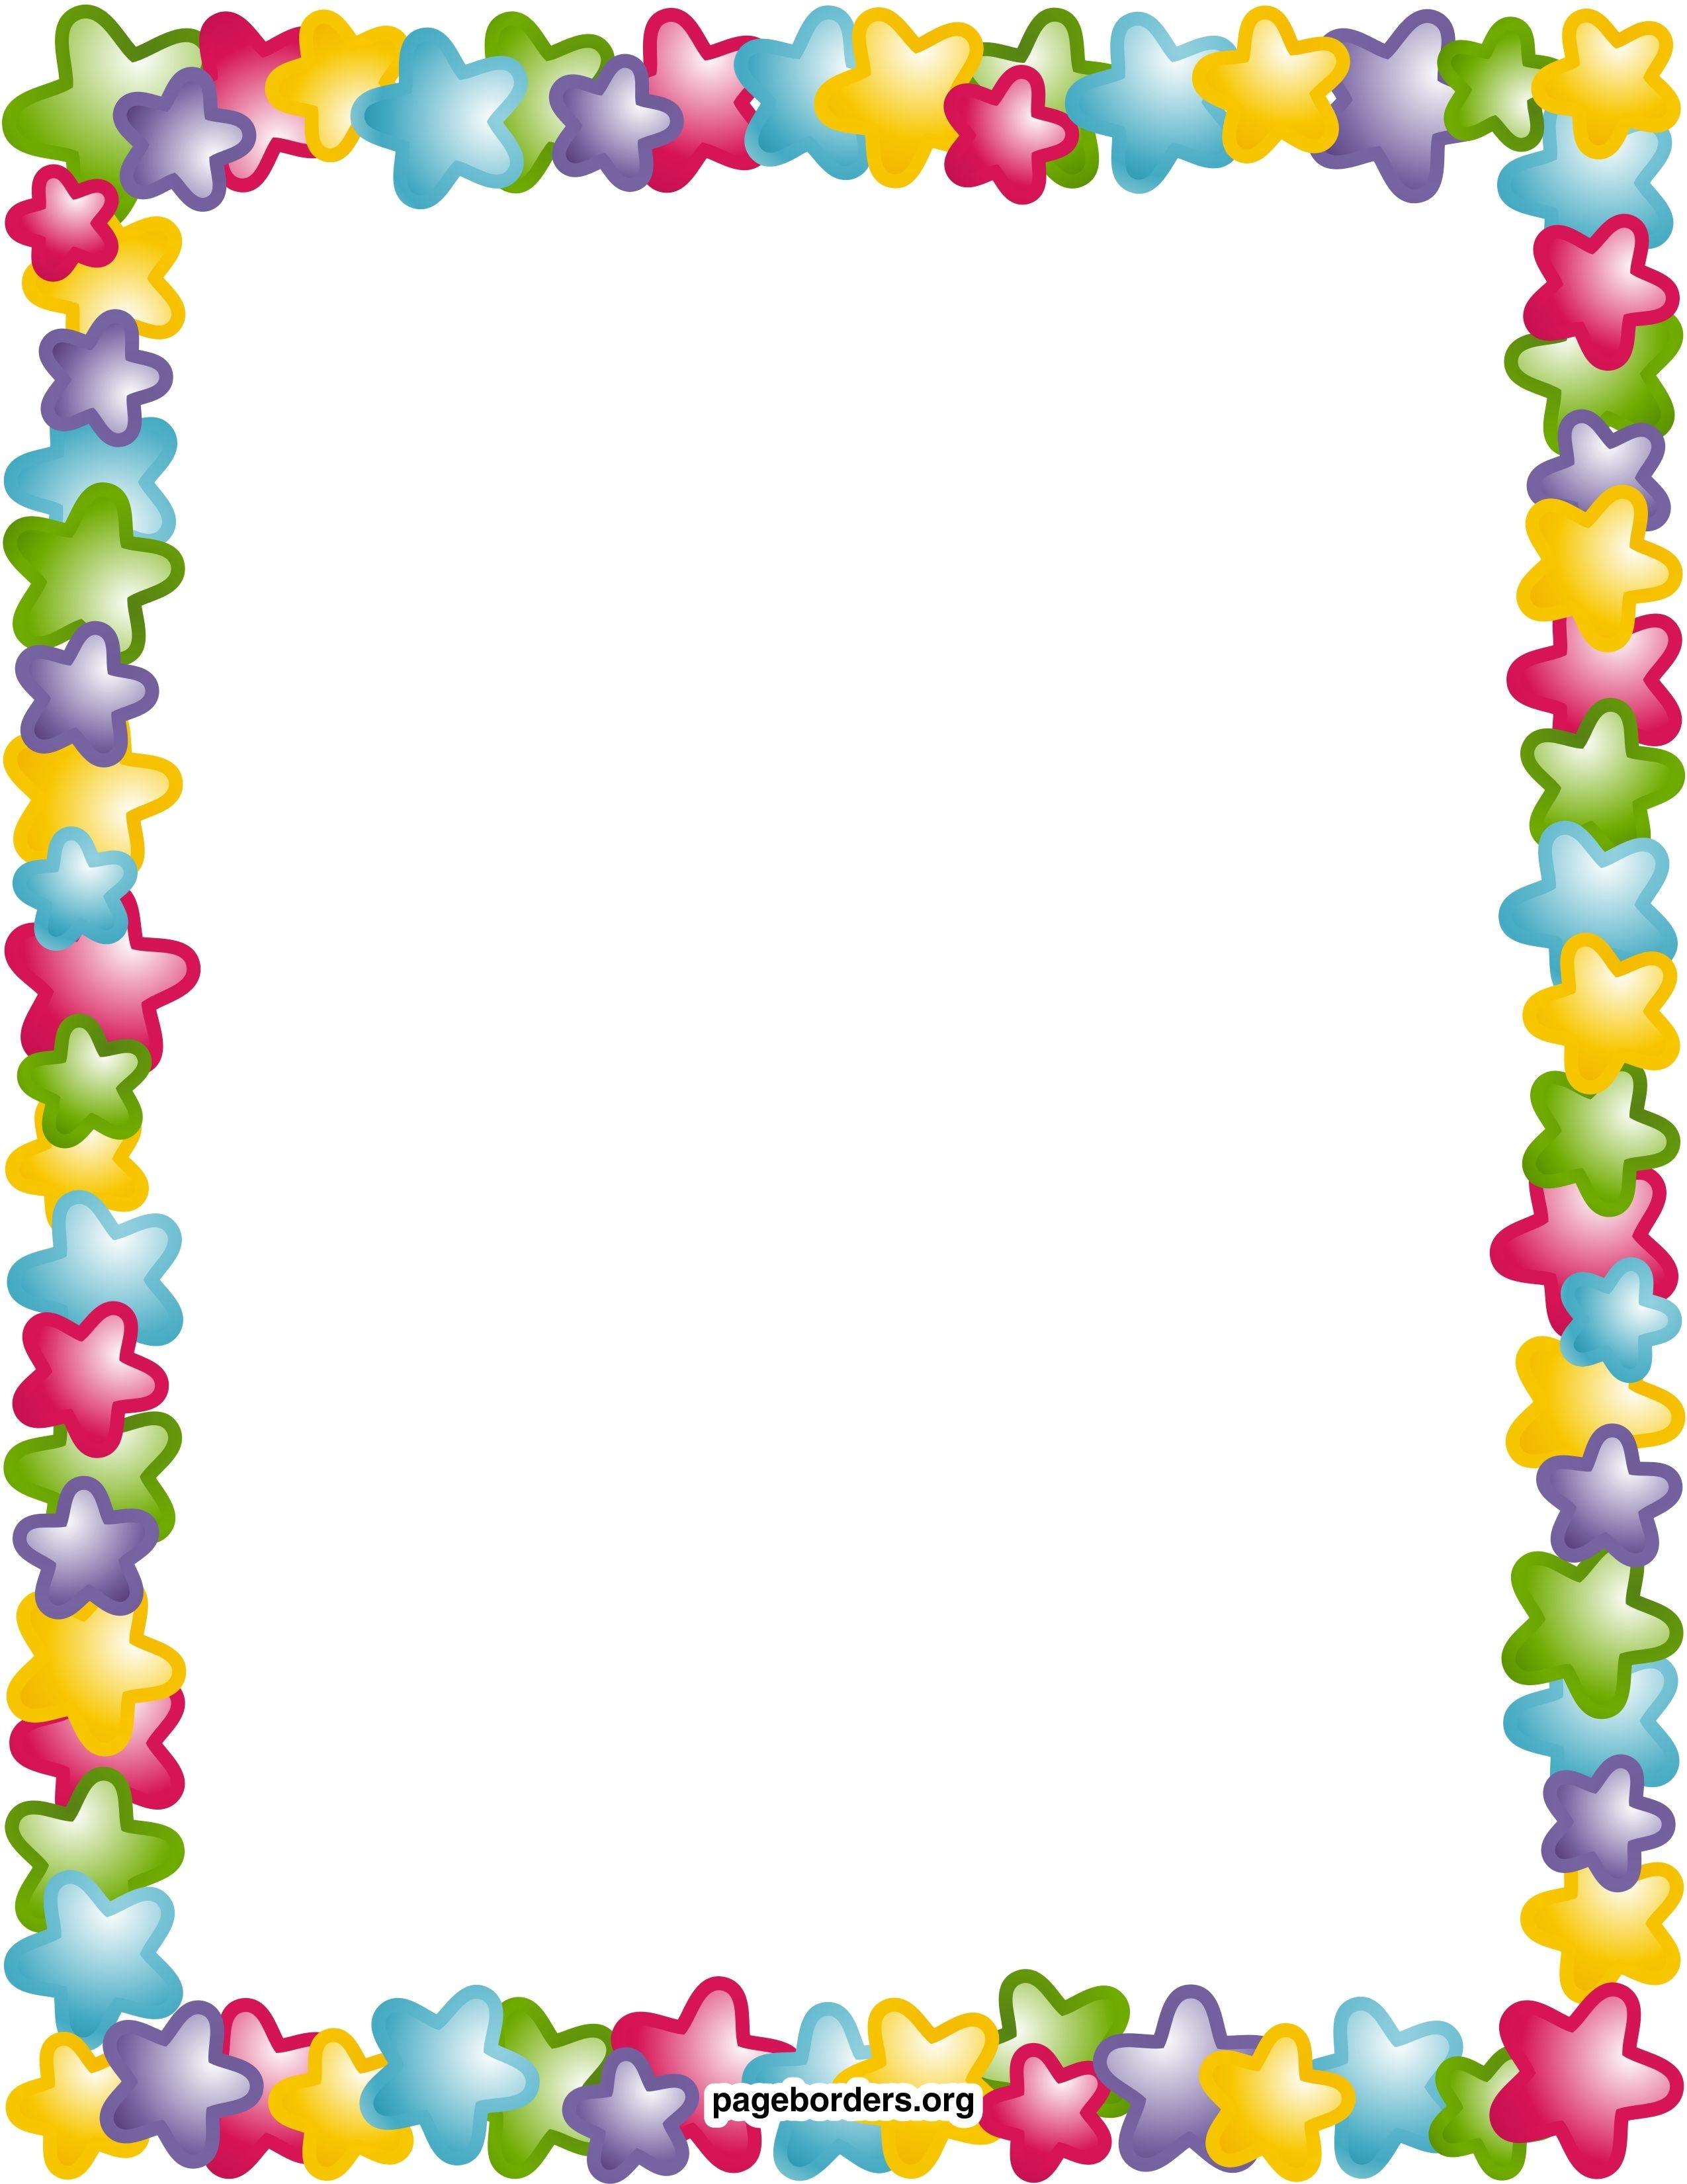 Remarkable Decoration Free Printable Borders And Frames Clip Art - Free Printable Borders